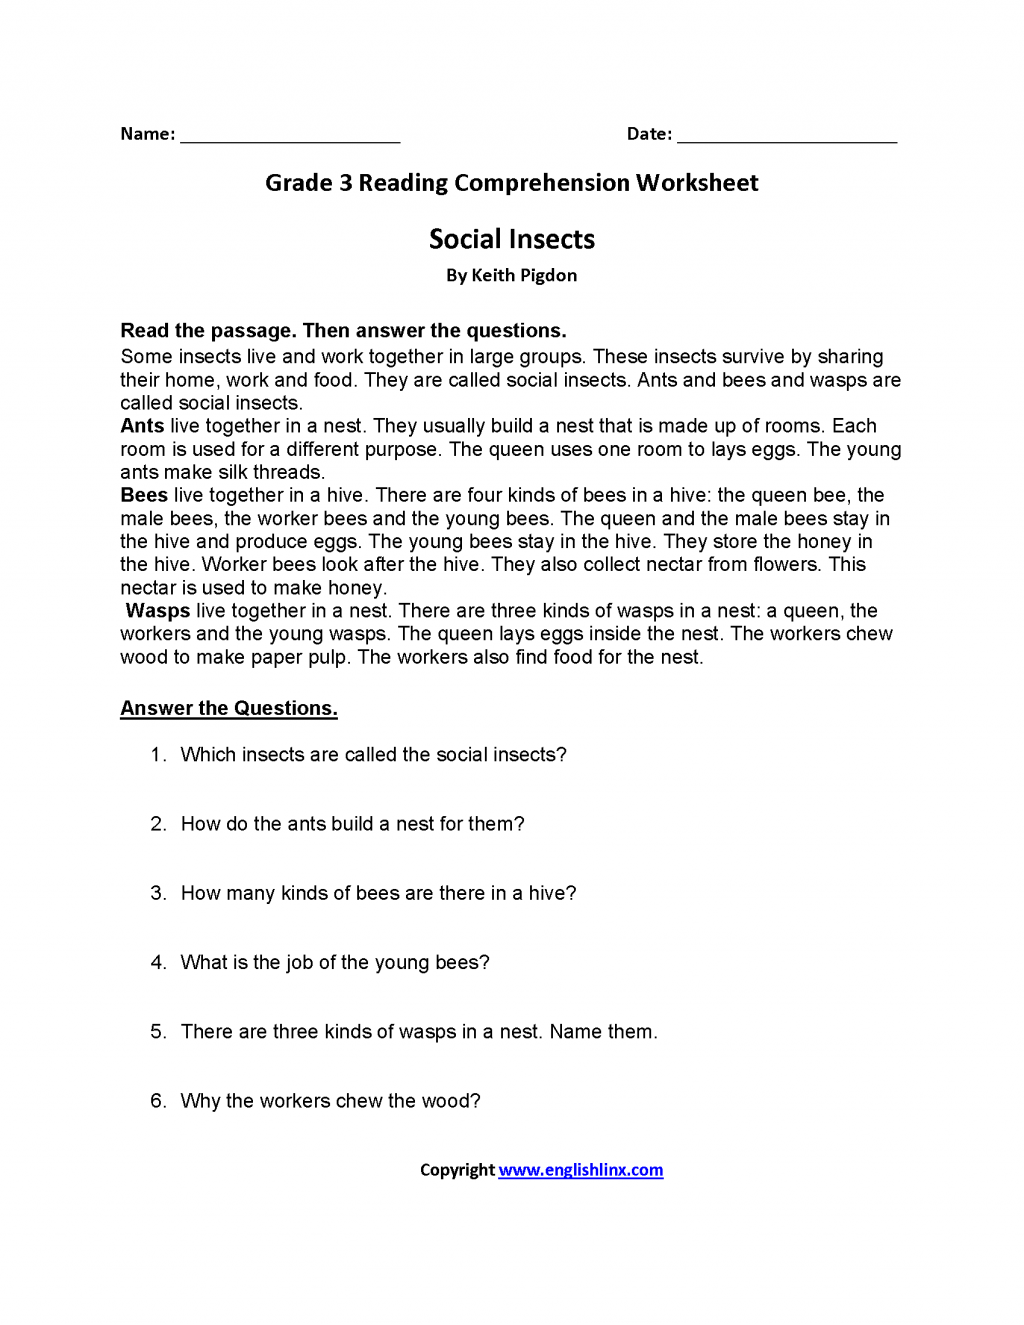 2 K5 Learning Math Free Worksheets For Grade 3 Math Worksheets Tag 50 Reading Comprehension Worksheets Comprehension Worksheets Third Grade Reading Worksheets